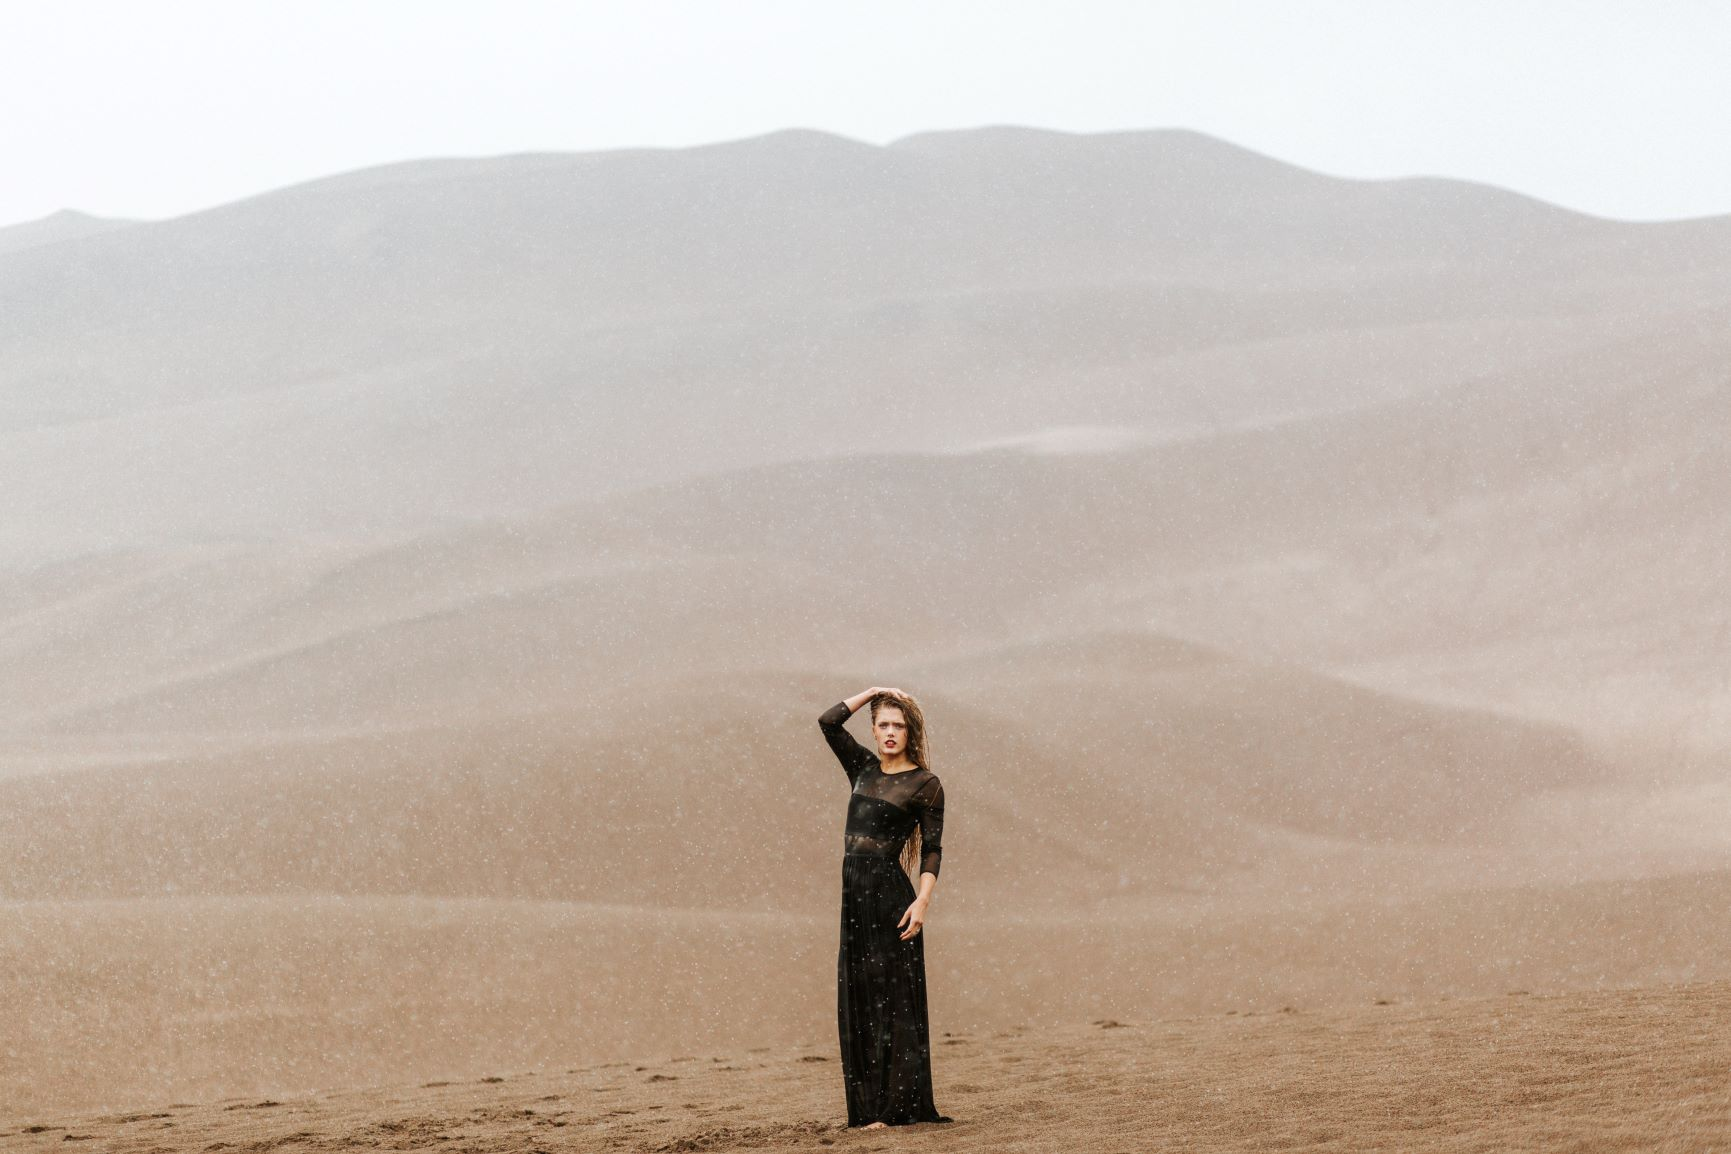 Desert // by Molly Shanahan